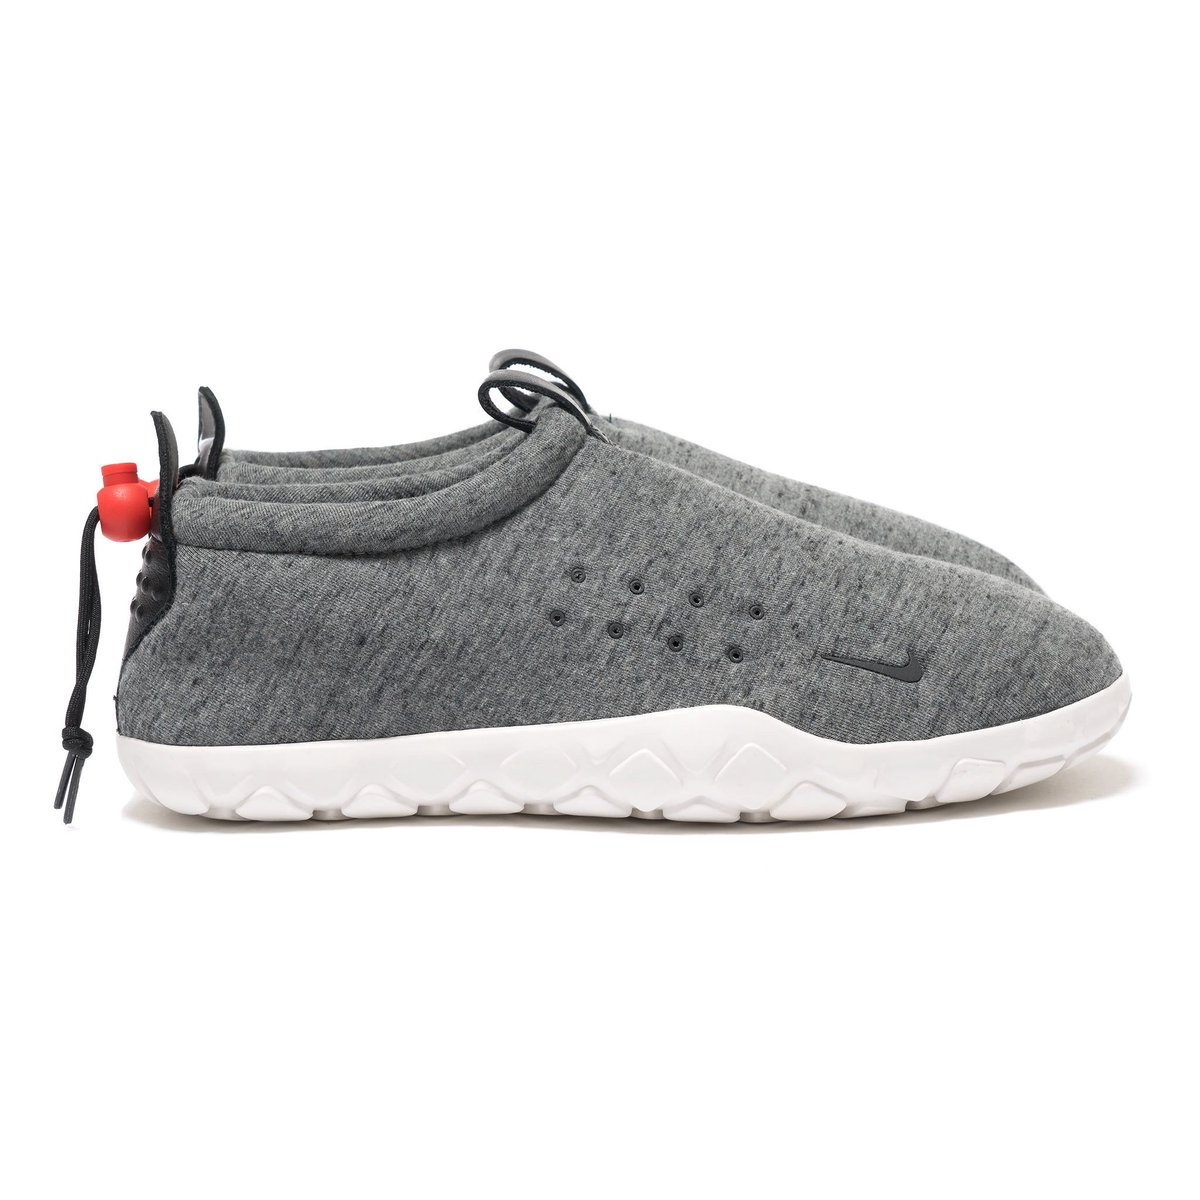 look out nike for bca2c 35212 nike out air moc 8e64d1